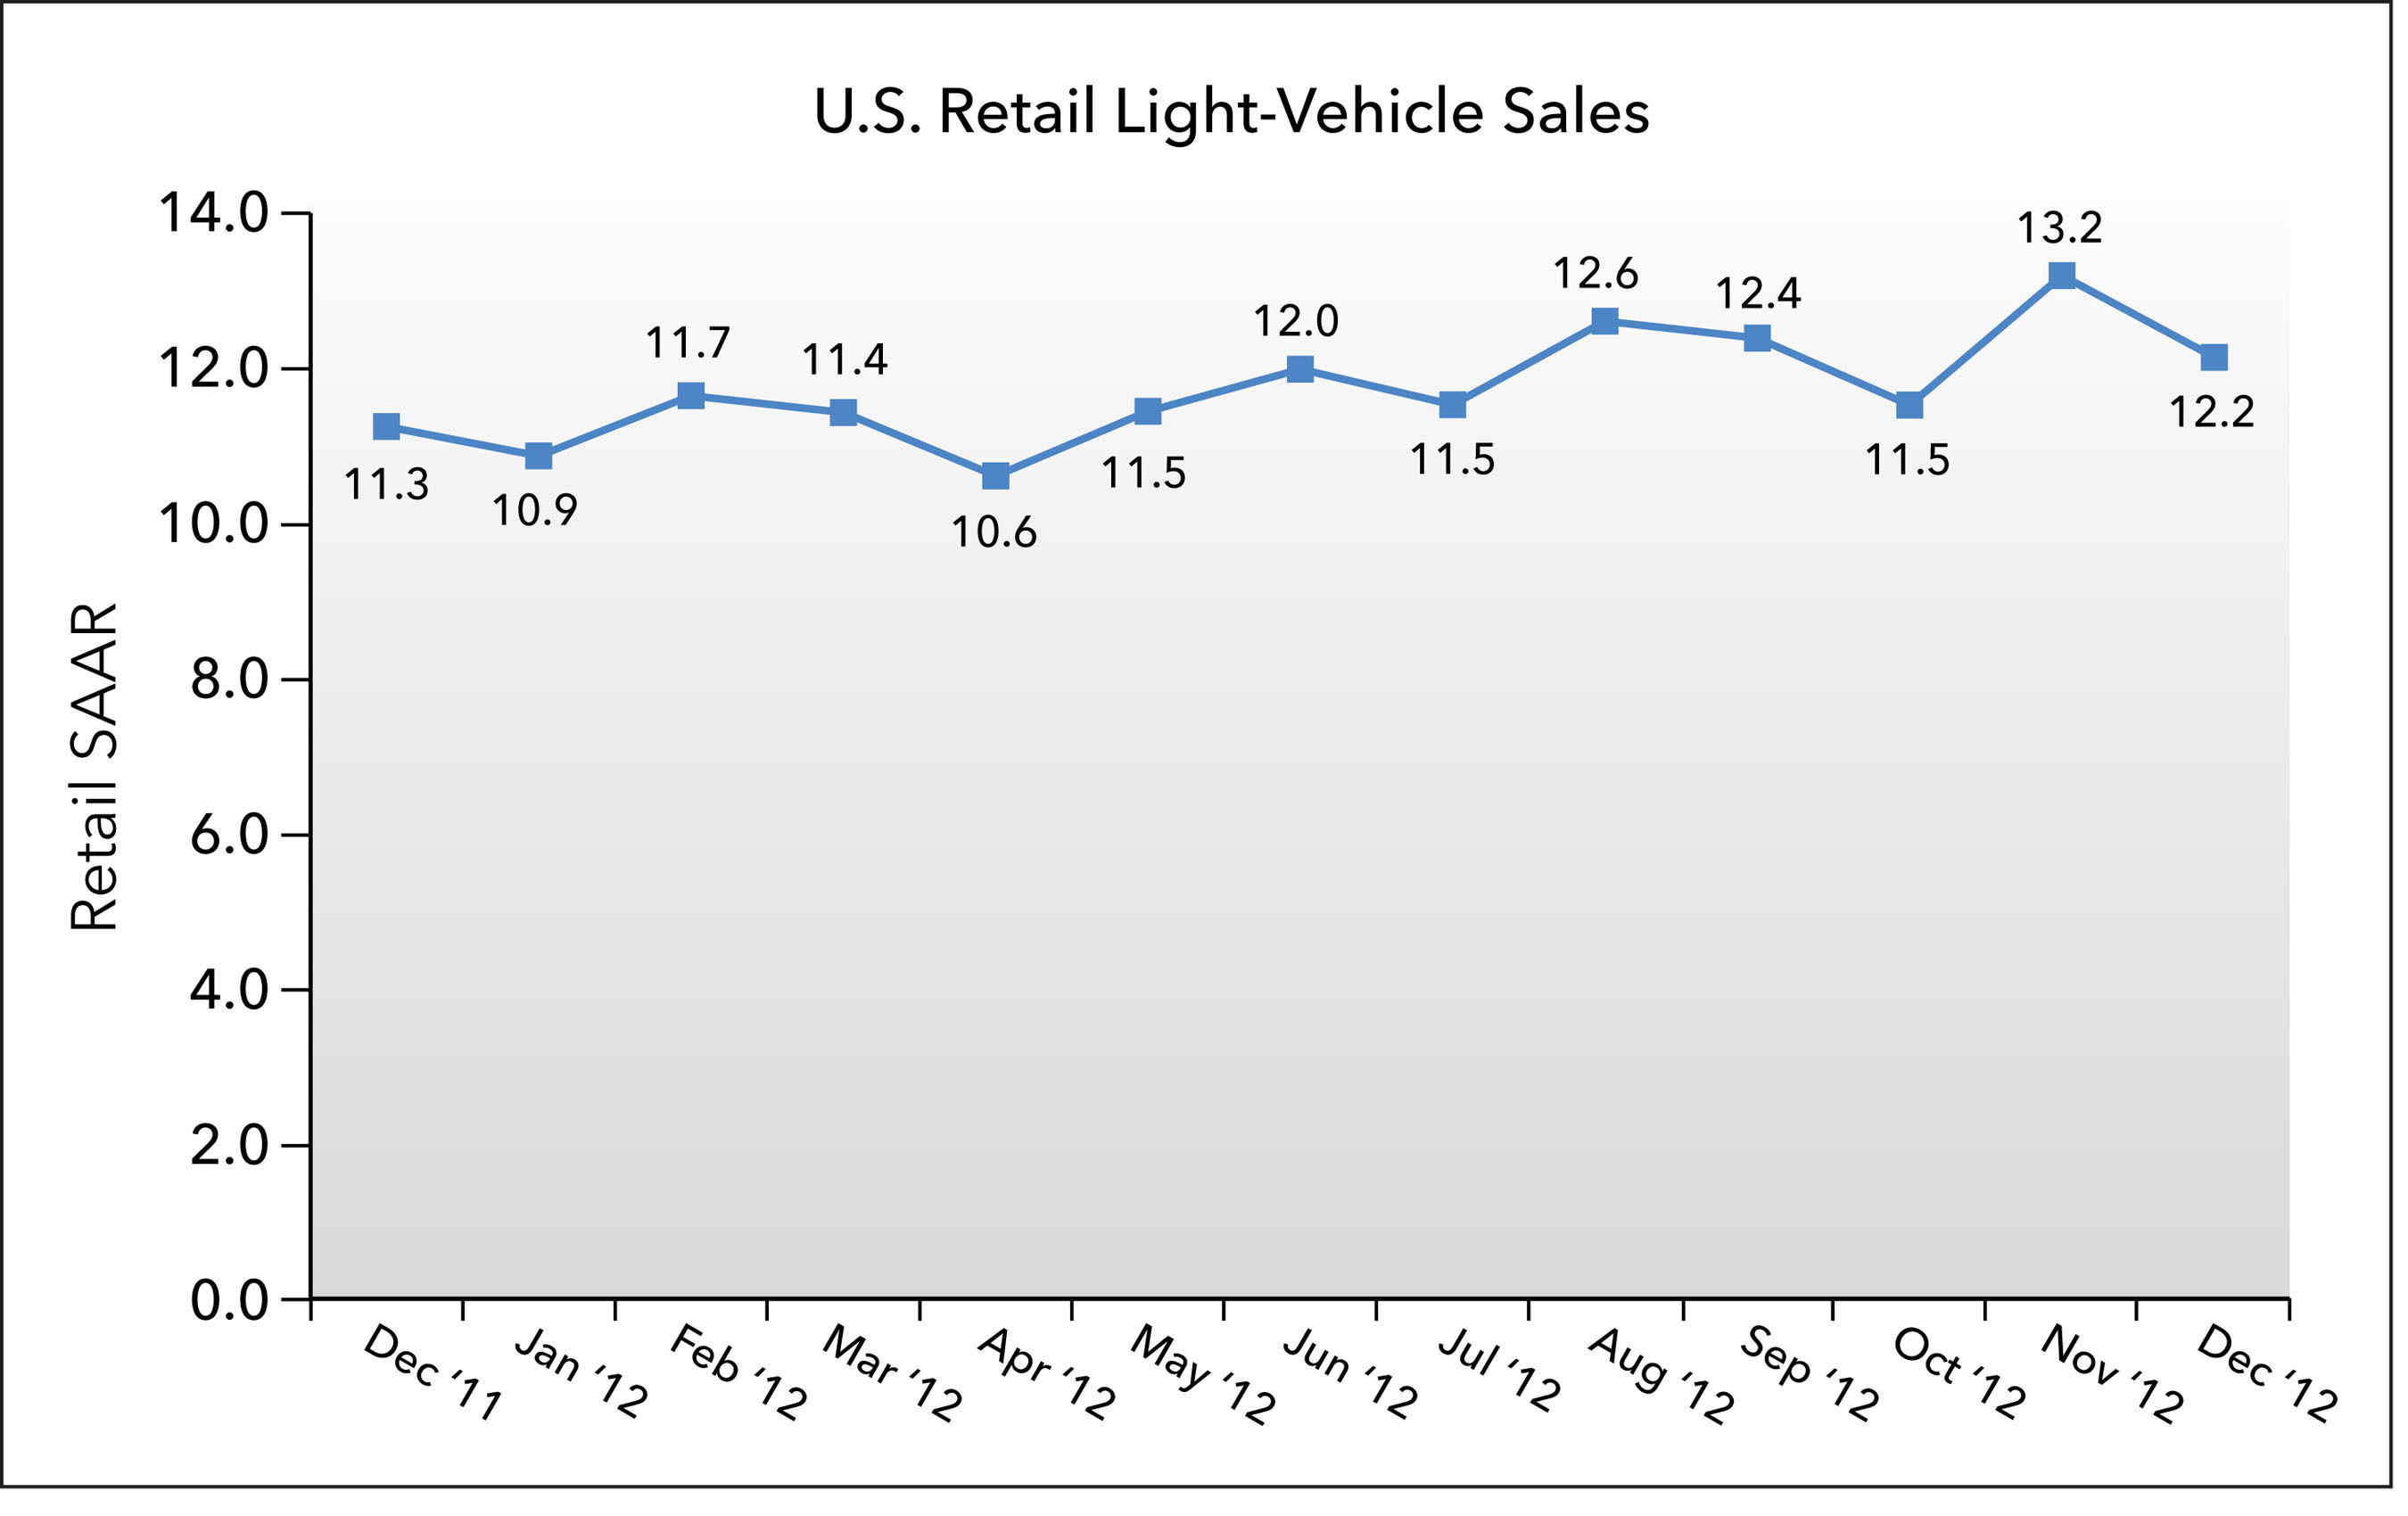 J.D. Power and LMC Automotive Report: New-Vehicle Retail Sales Expected to Close Out 2012 with